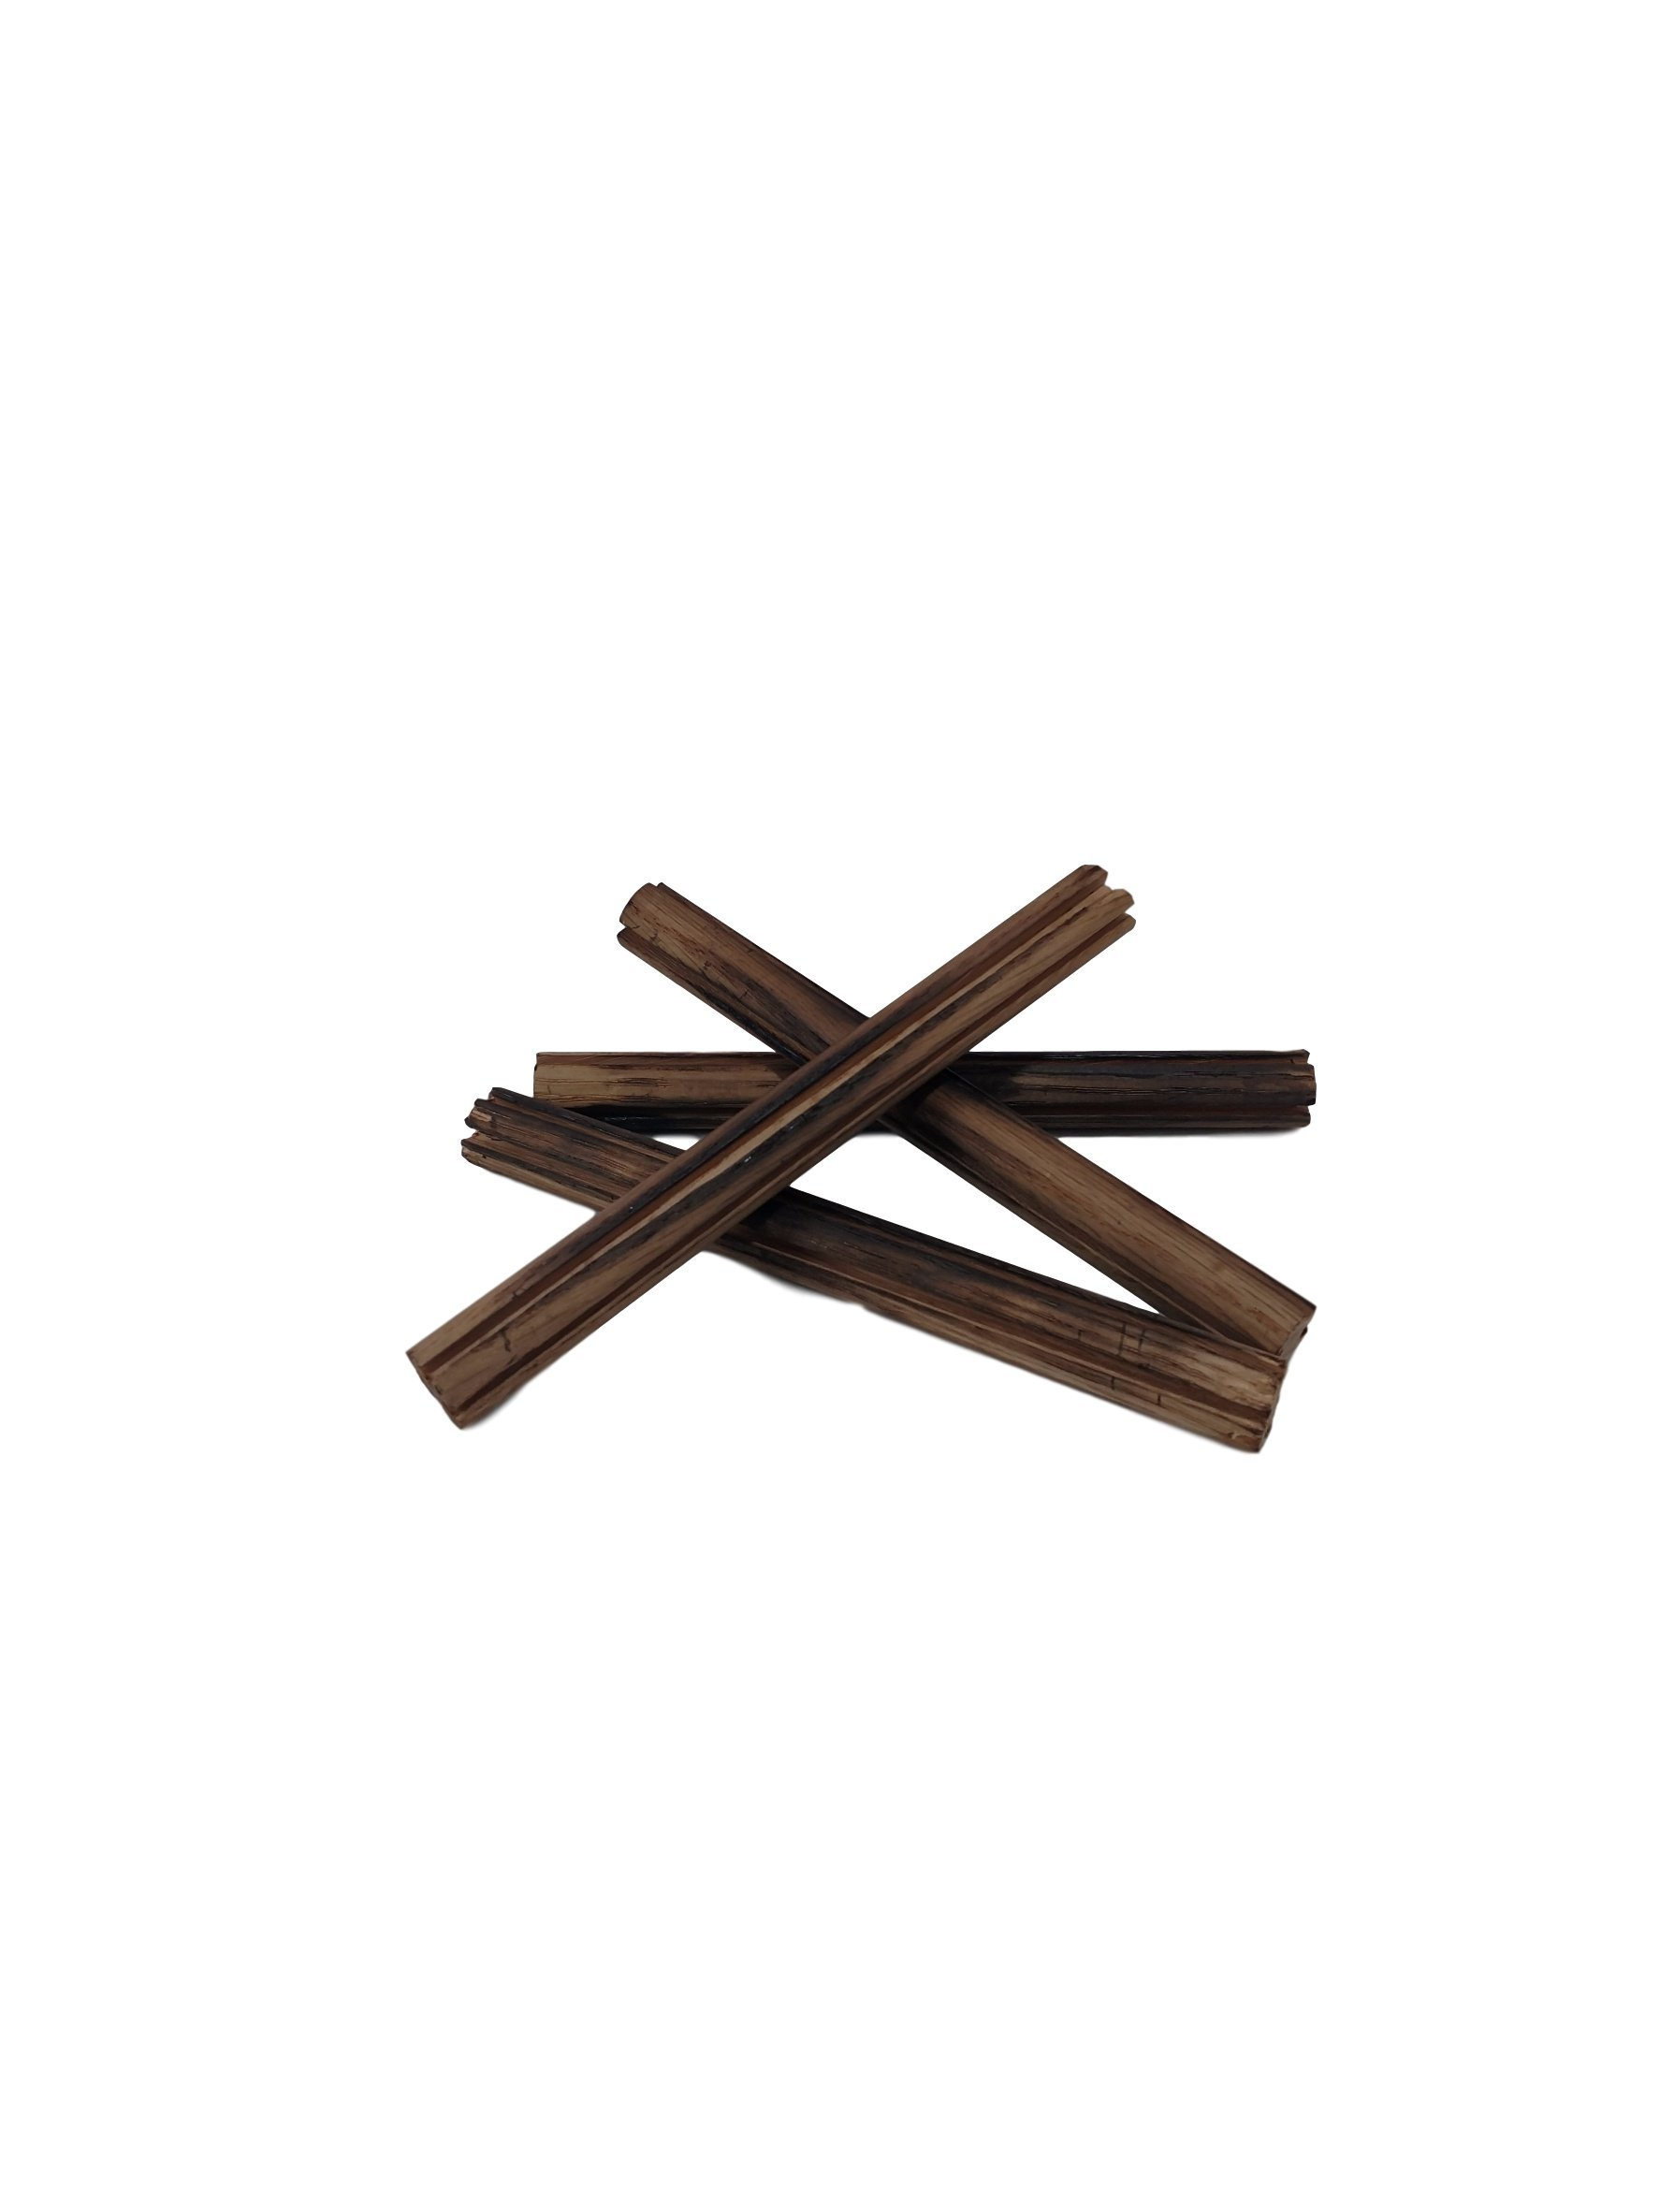 Whiskey Aging Infusion Sticks - Set of Four 6''- for Home Brewers, Charred Oak enhances flavors of your favorite Whiskey, Scotch, Wine, Beer or Moonshine!